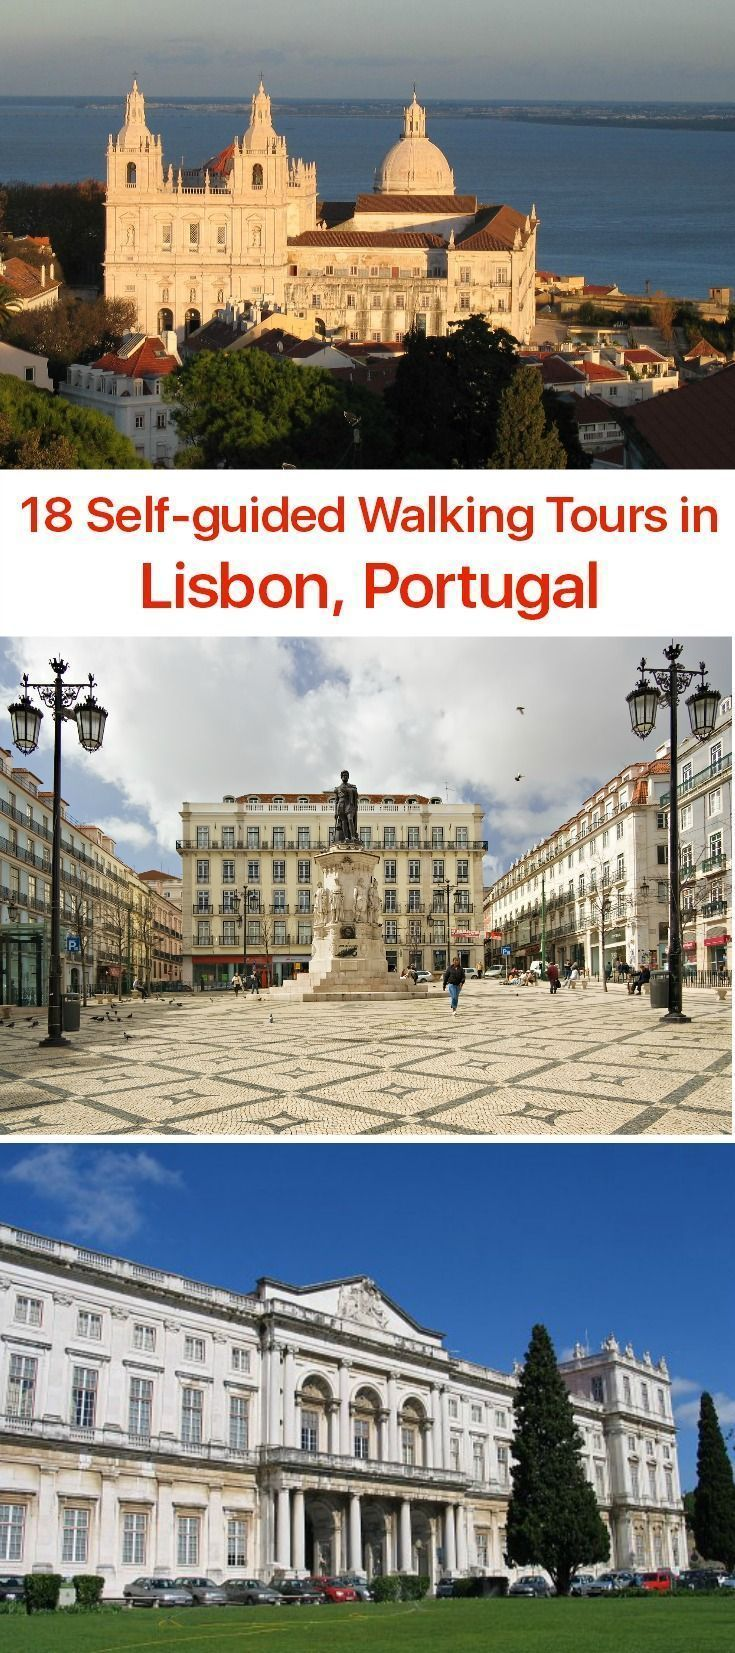 Sprawled on the hills overlooking the Atlantic, Lisbon combines magnificence of the capital of one of the world's once mightiest empires with the charm of a coastal city renowned for its cafe culture and remarkable Fado music.